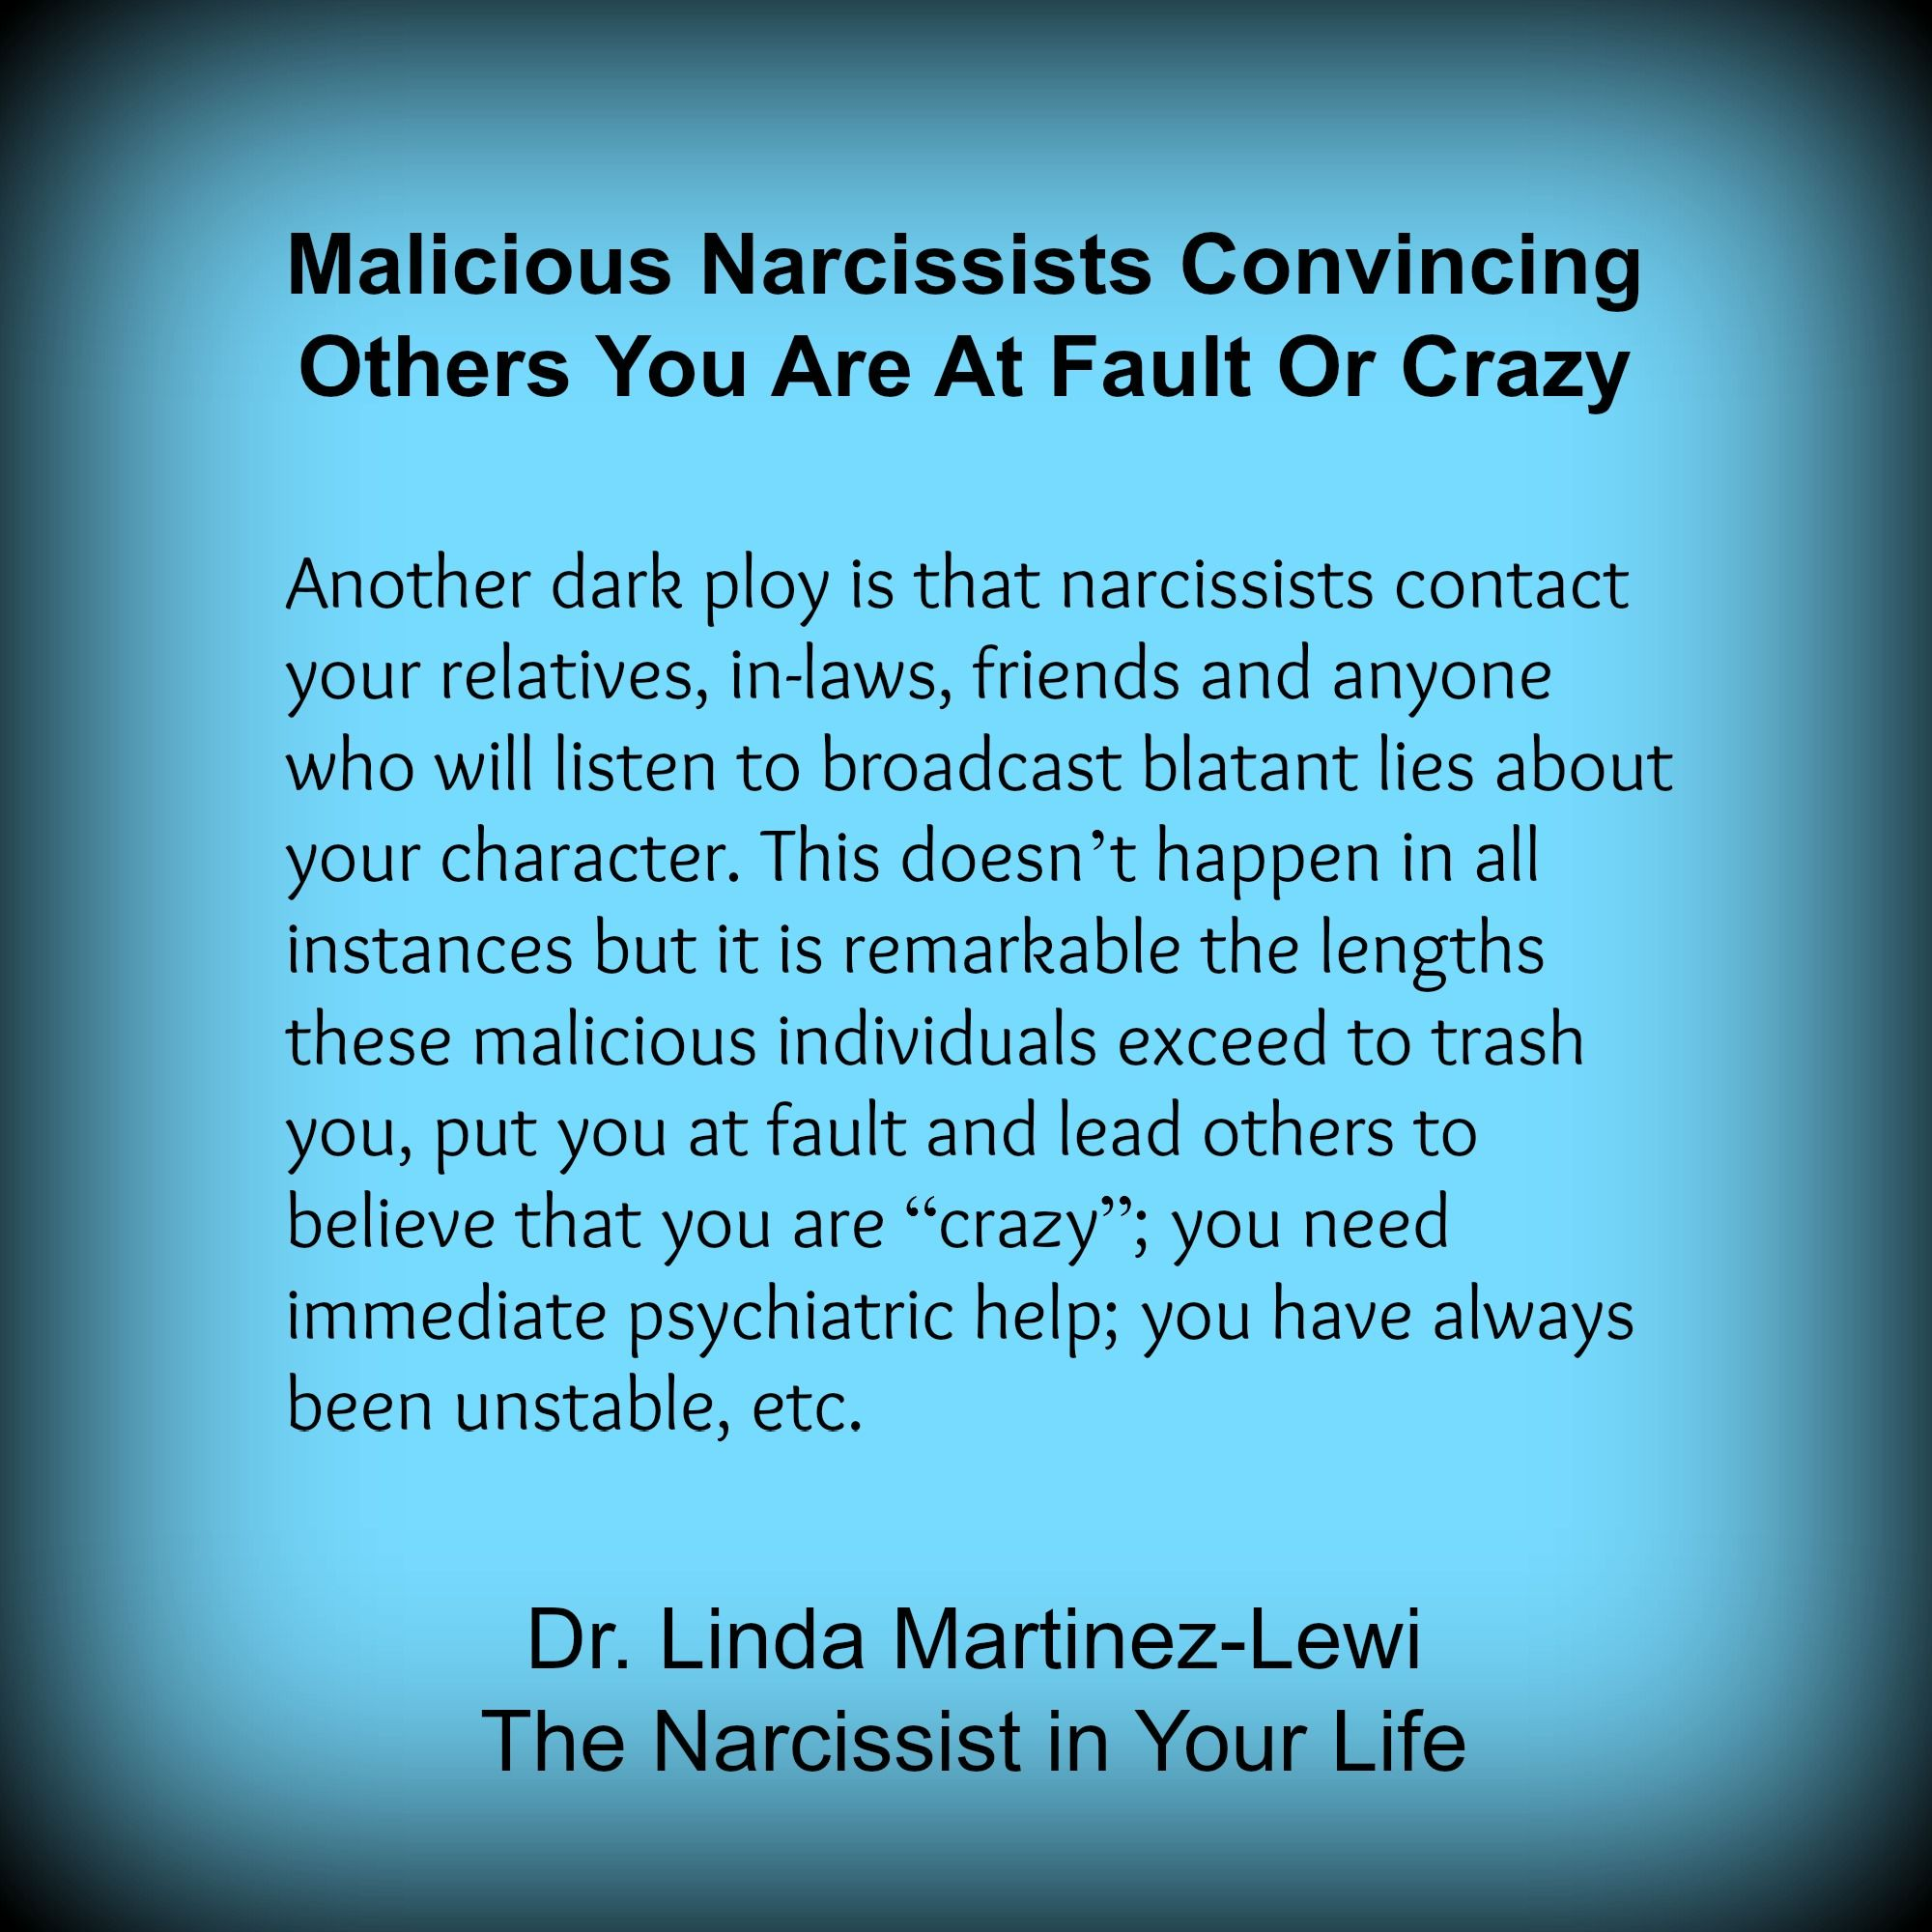 dr linda martinez lewi cious narcissists convincing others my manly ex and her incestuous family mailed anonymous letters cards balloons to my boss college employer television channels old fraternity talk